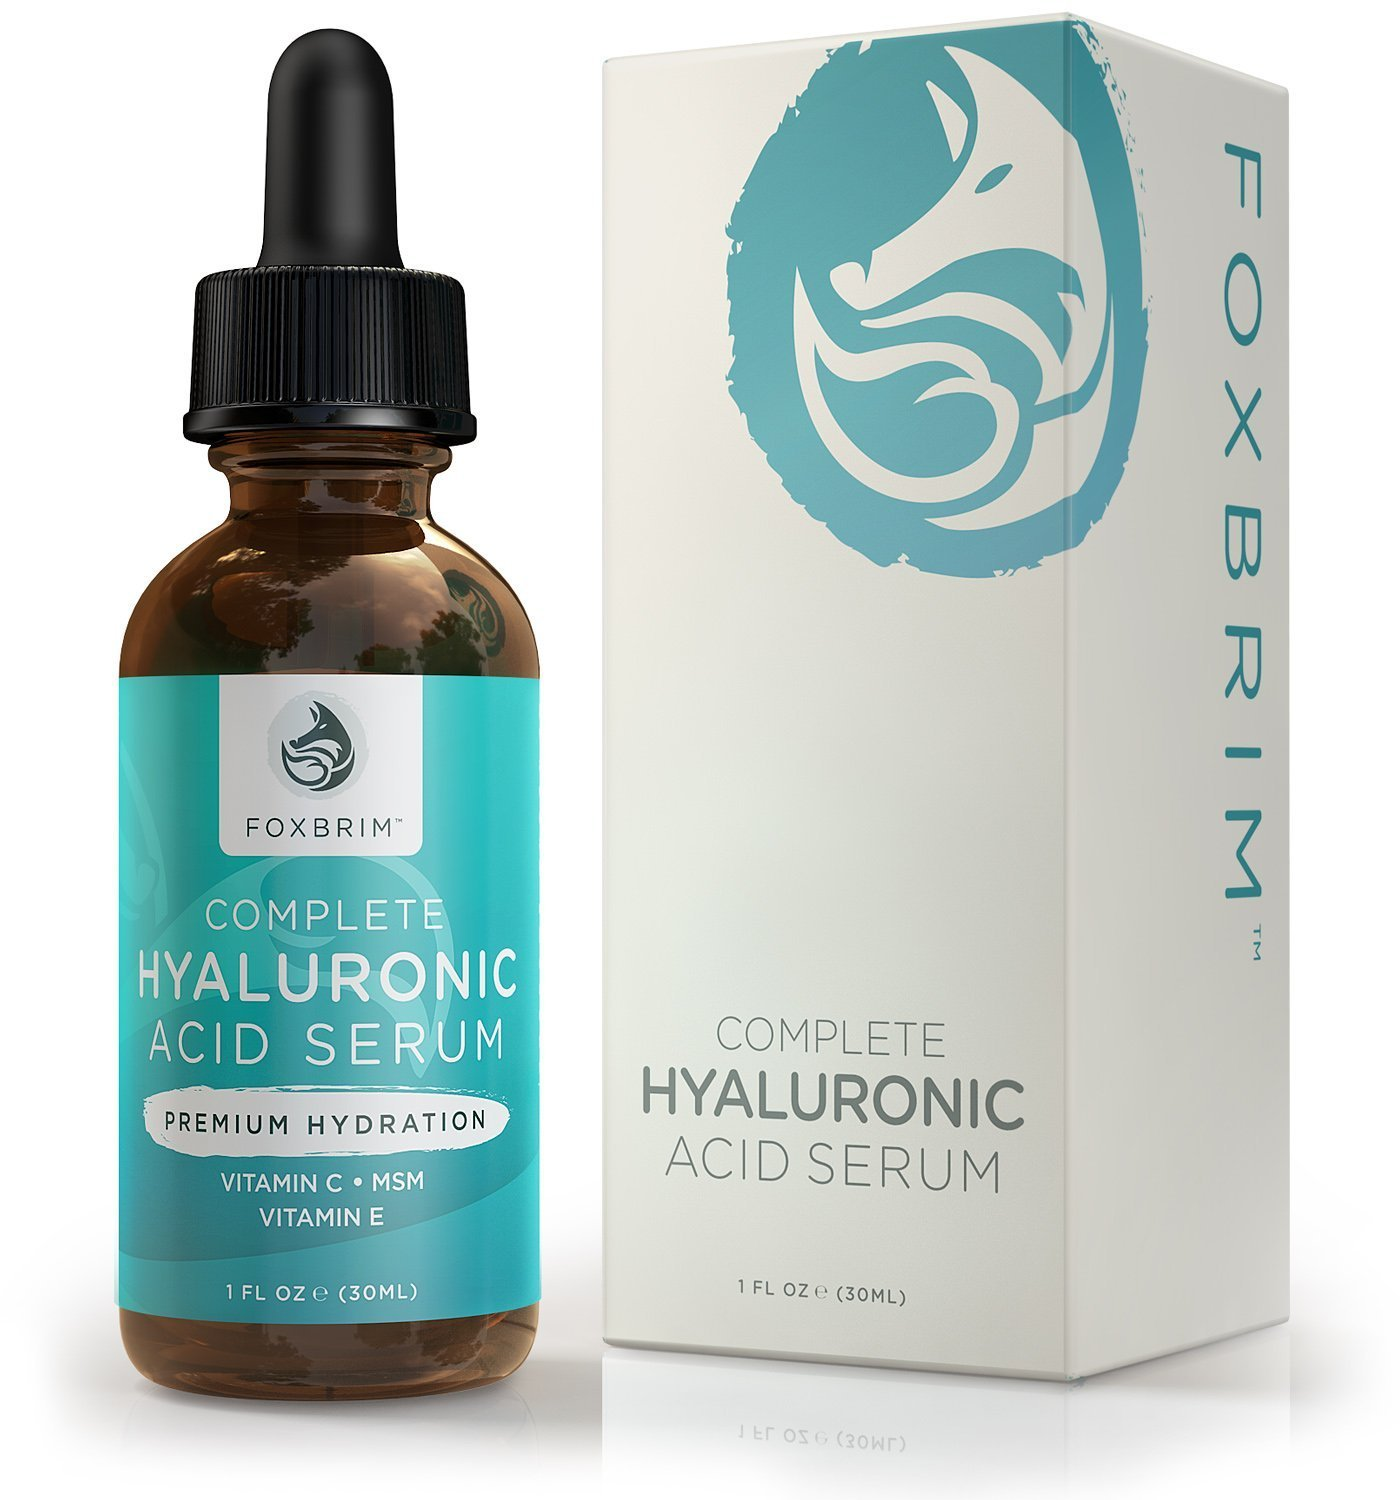 Complete Hyaluronic Acid Serum - Hydrating ANTI-AGING Face Serum - Moisturize & Reduce Fine Lines - Premium Powerful Ingredients Vitamin C, Green Tea, Jojoba Oil & Witch Hazel - Natural & Organic for Lasting Results - Foxbrim 1OZ Foxbrim Natur